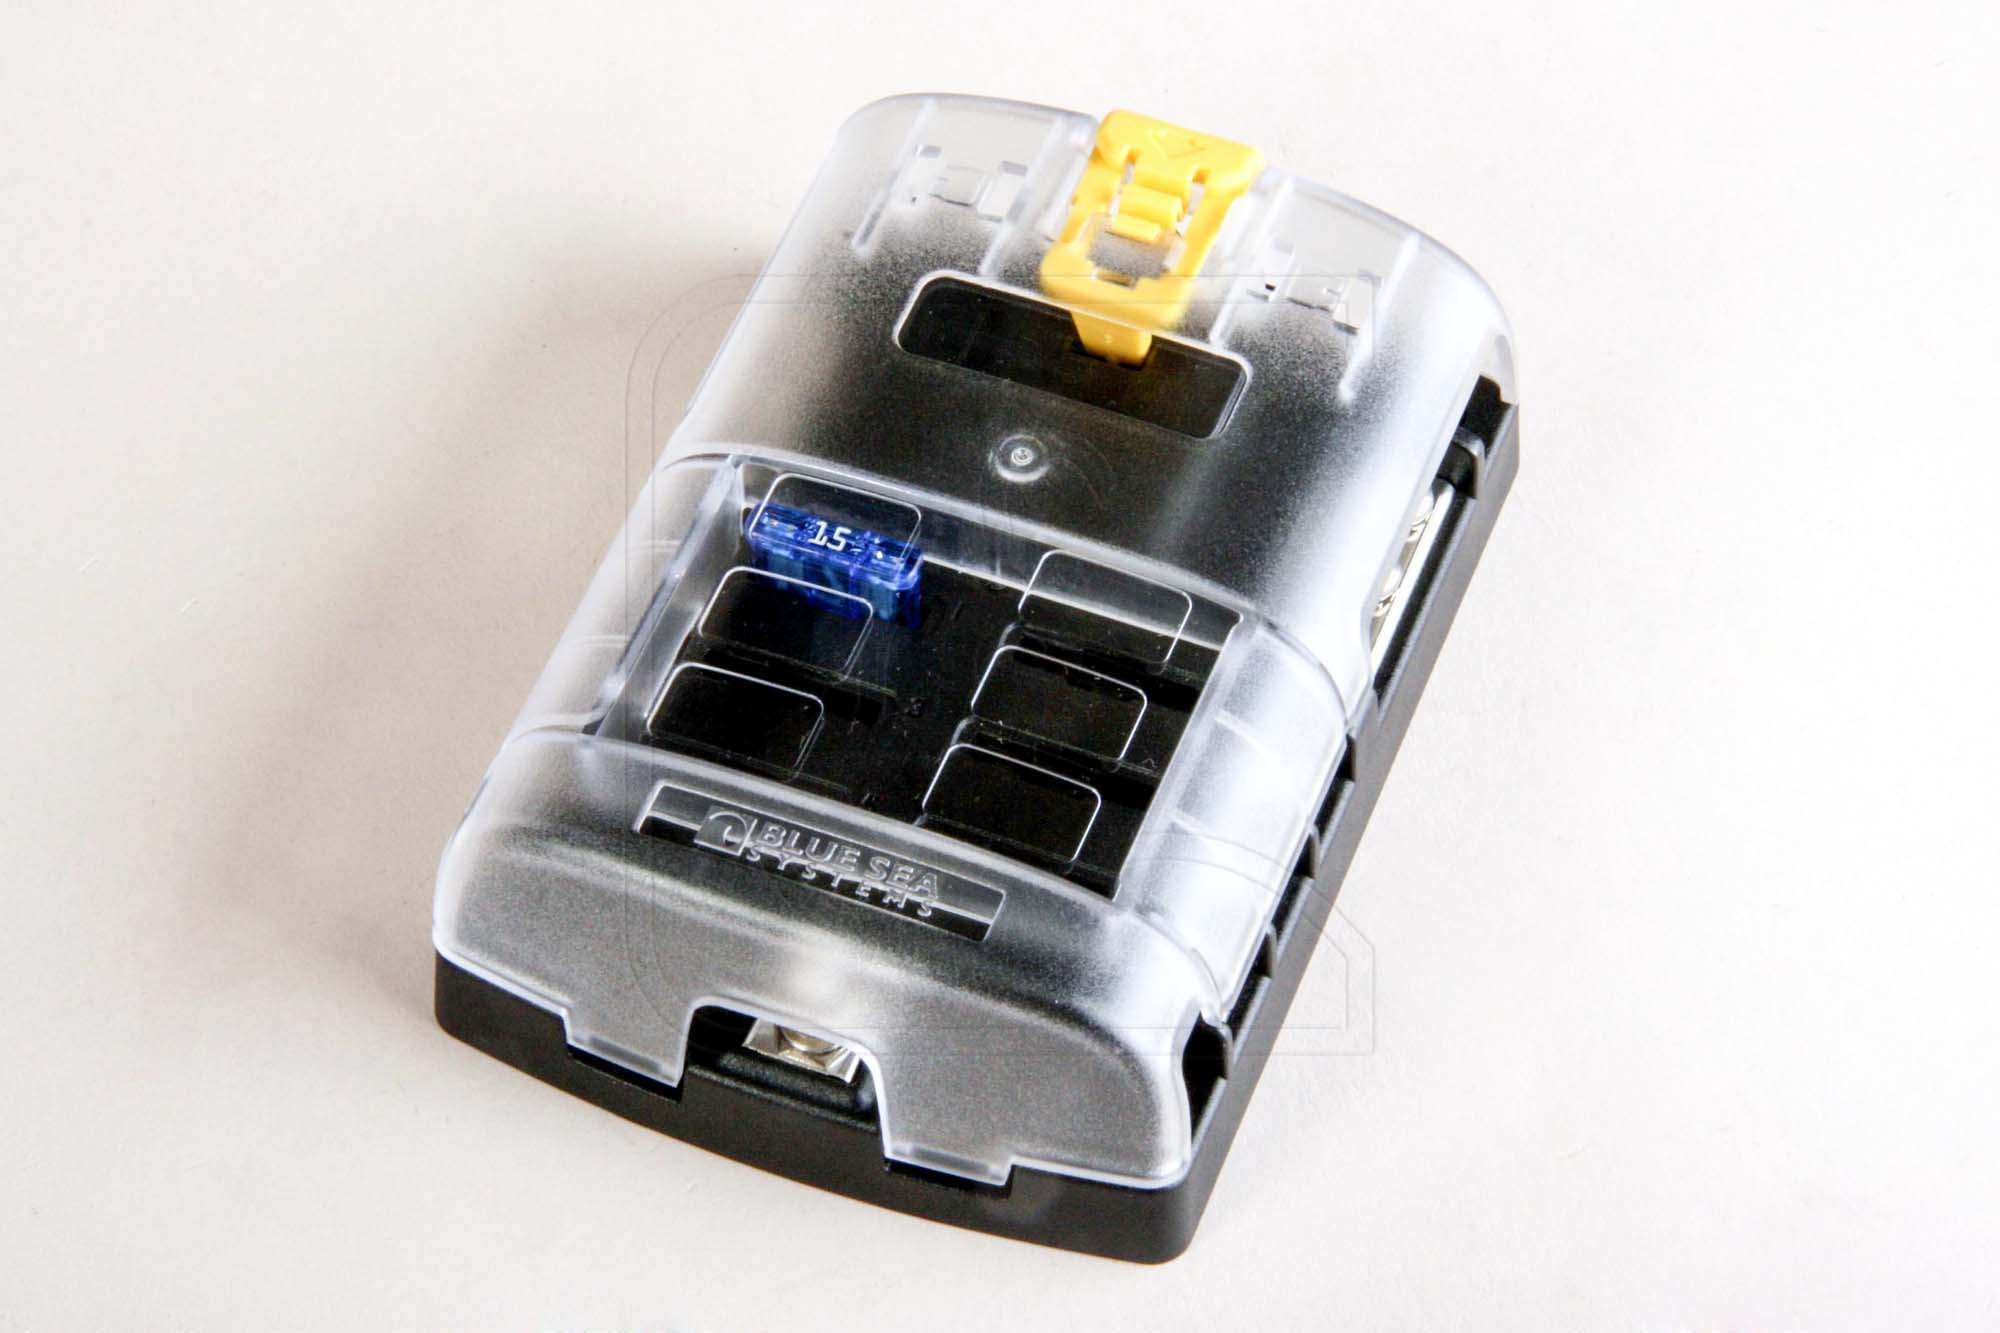 Buy Bluesea Fuse Block Now Online At Nakatanenga Land Rover Defender Auxiliary Box 4x4 Equipment For Offroad Outdoor